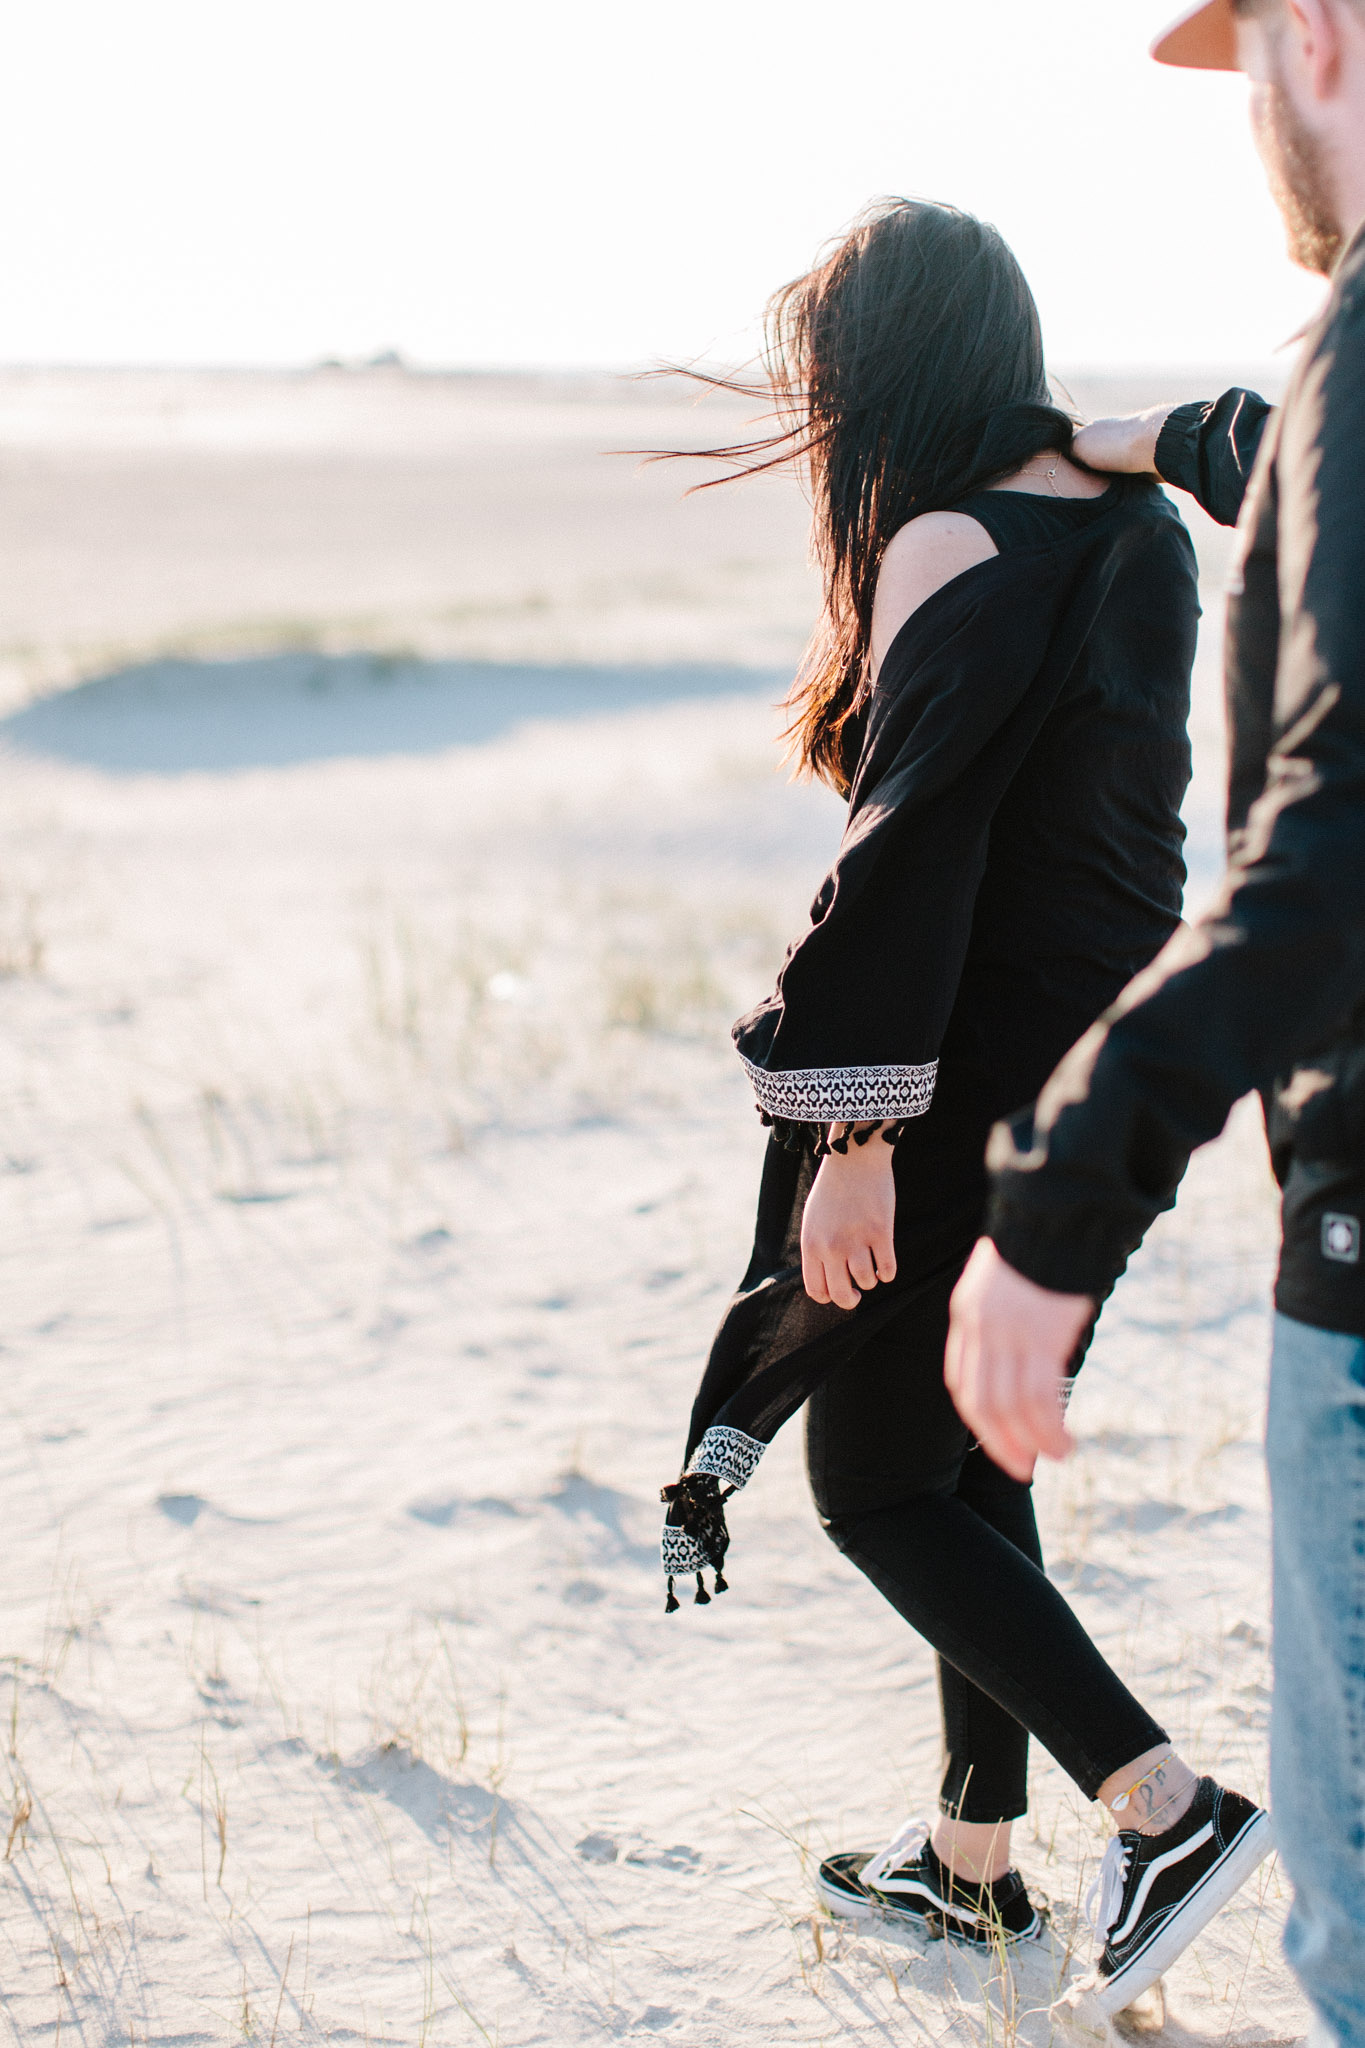 Sankt-Peter-Ording-Engagement-Pia-Anna-Christian-Wedding-Photography-KT-22.jpg